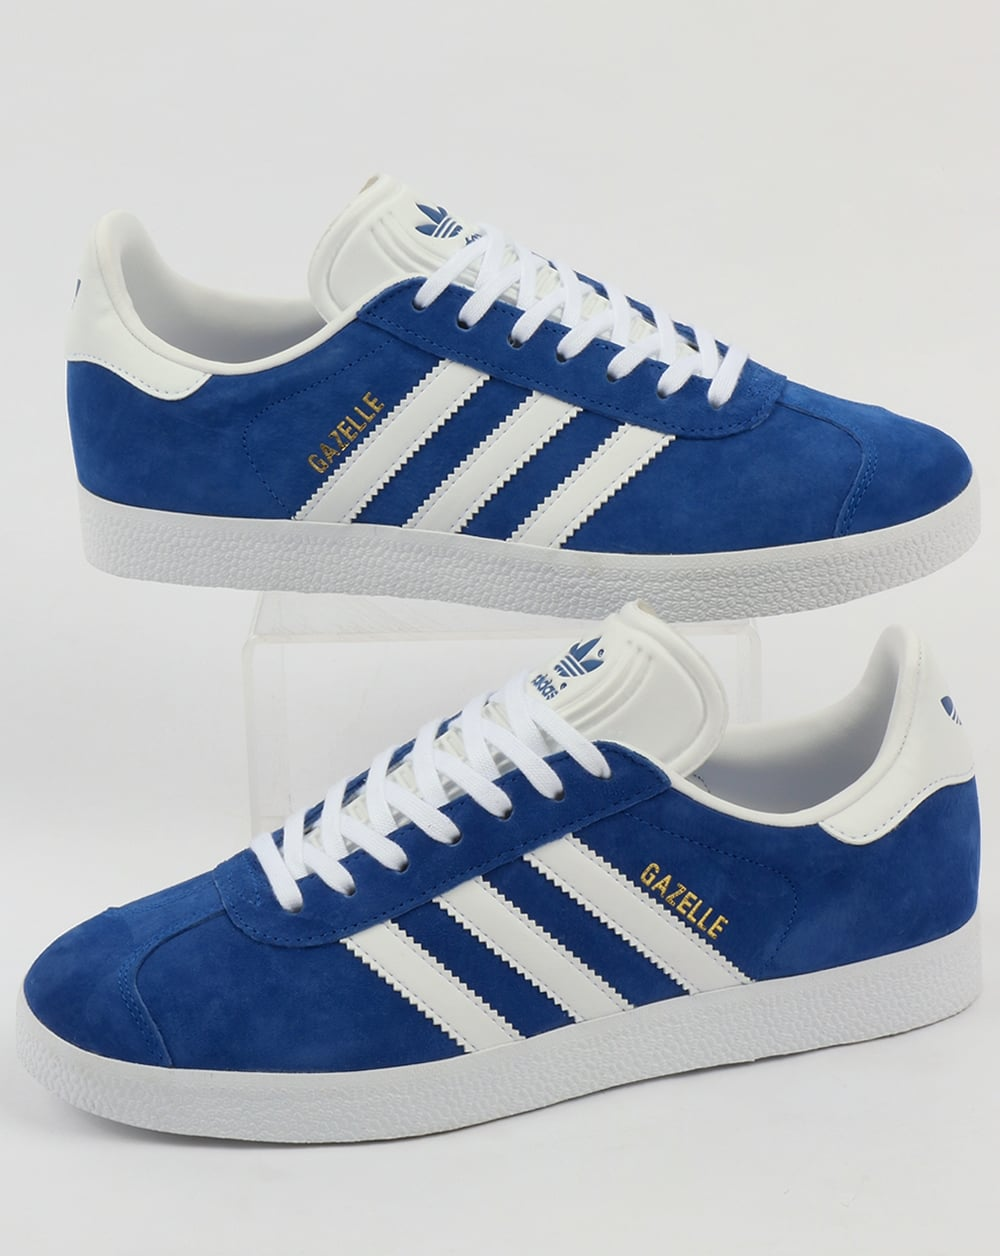 adidas retro trainers